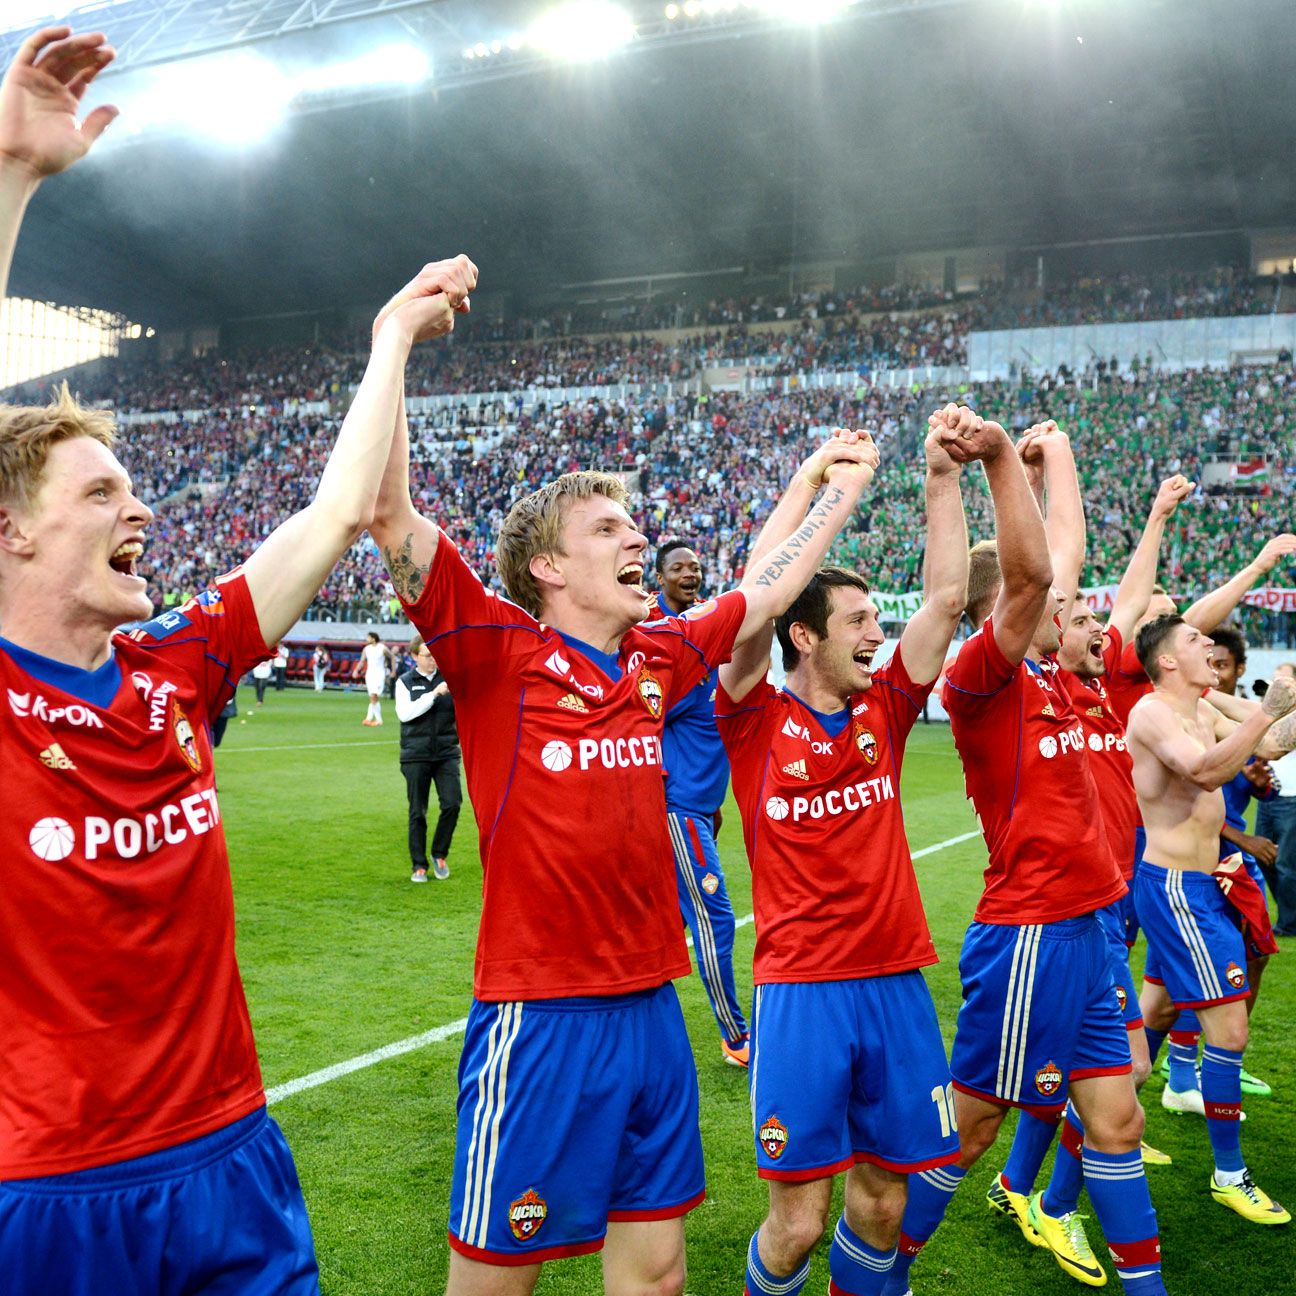 CSKA Moscow sneaked to their second straight league title last season. Can they do it a third time?